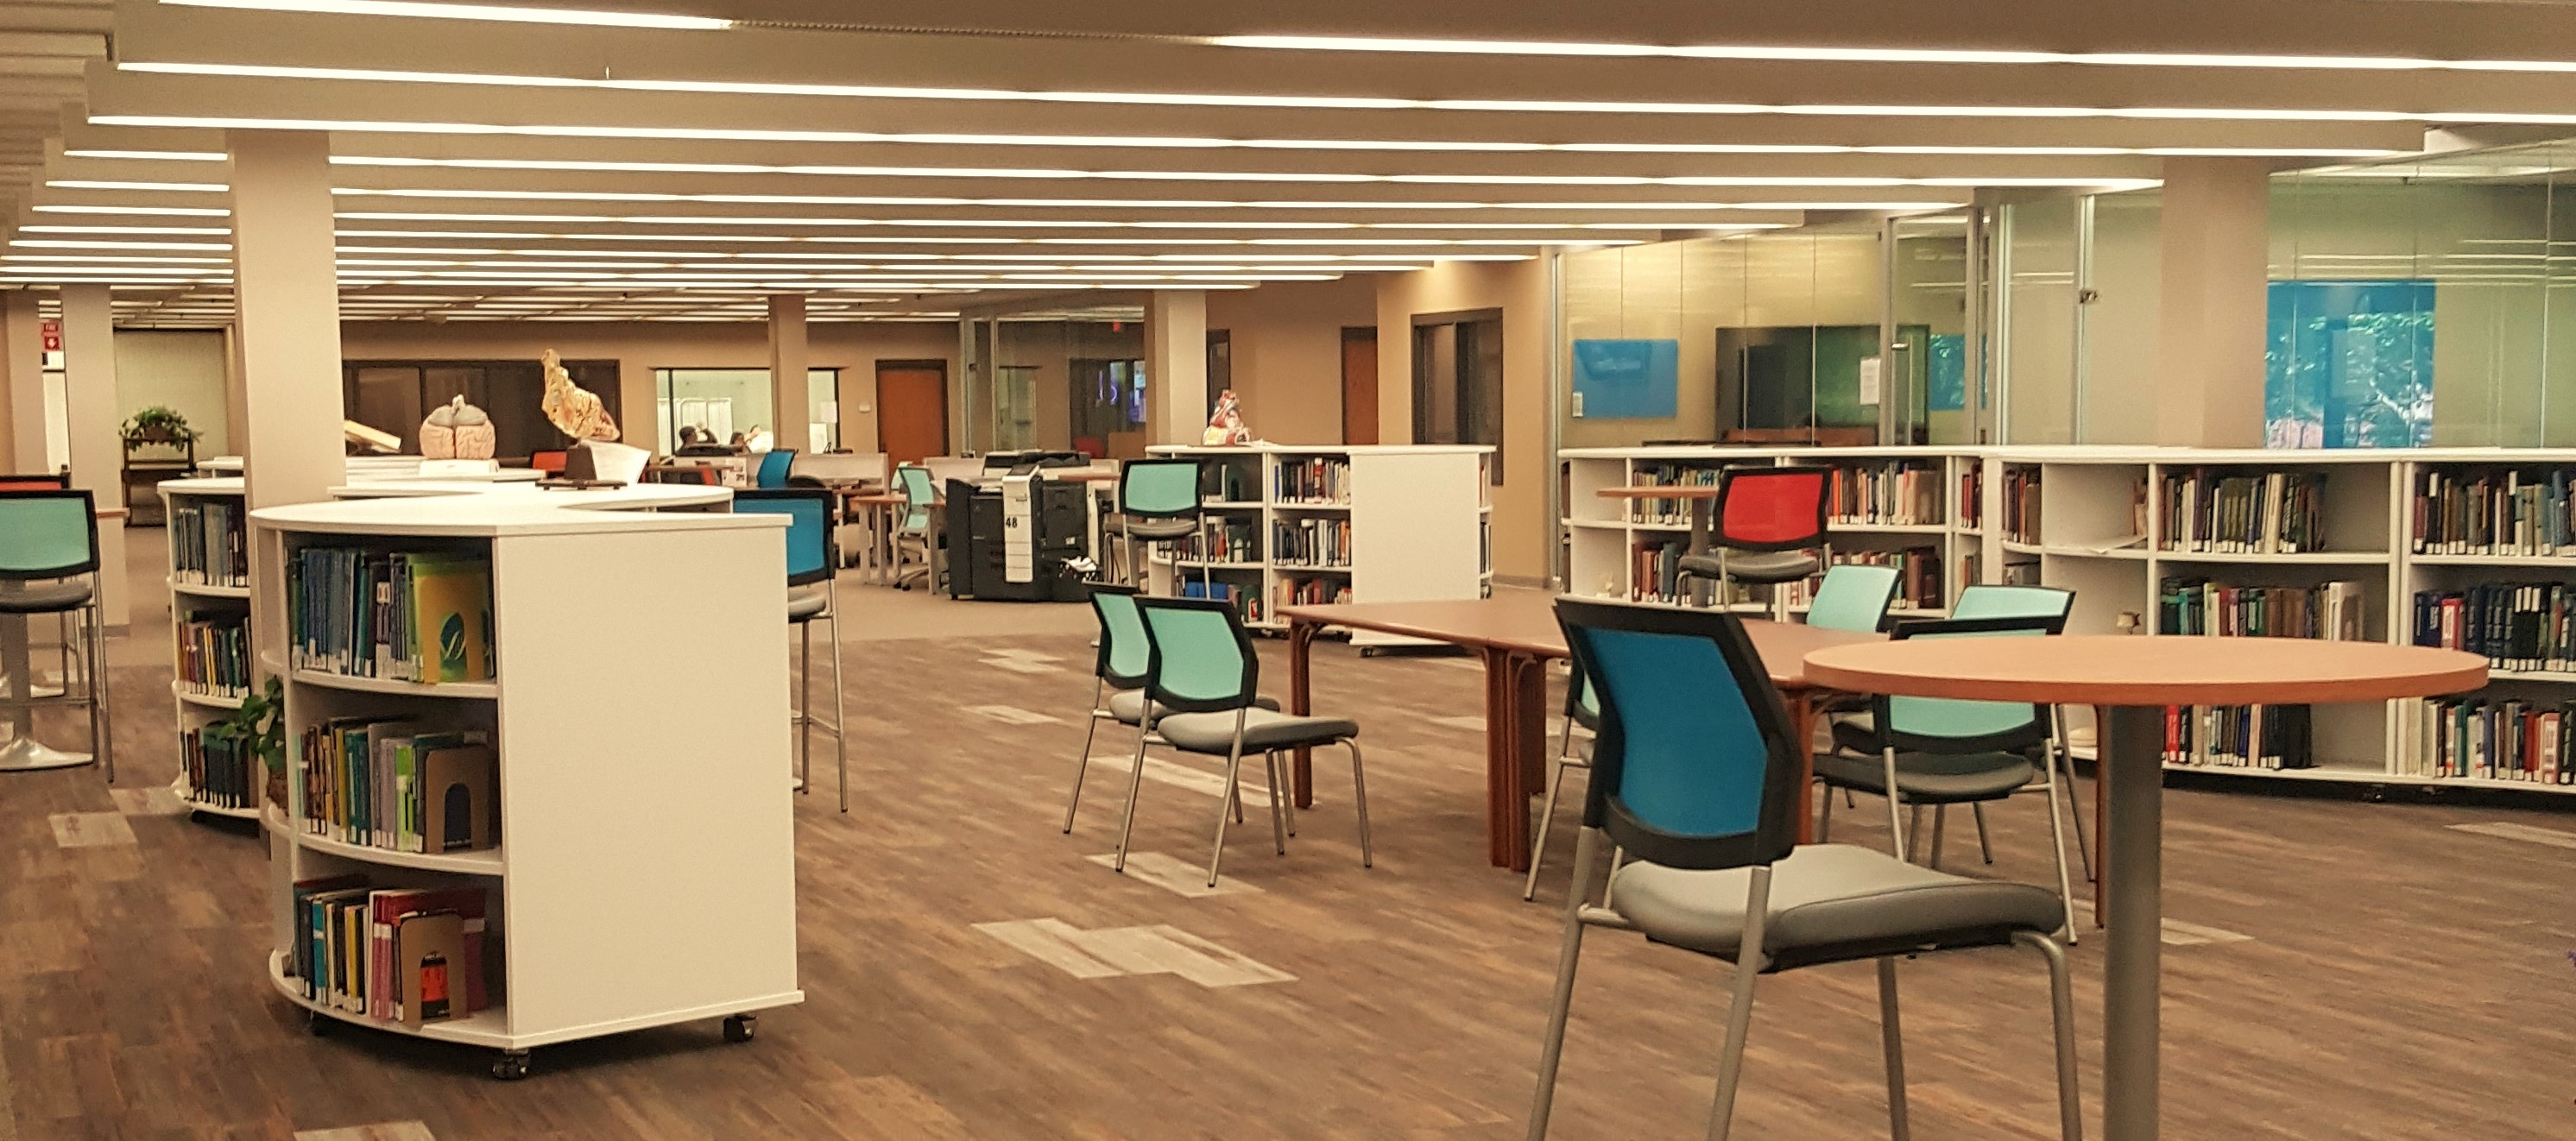 Photograph of library interior, showing anatomical models, meeting rooms, and computer kiosks